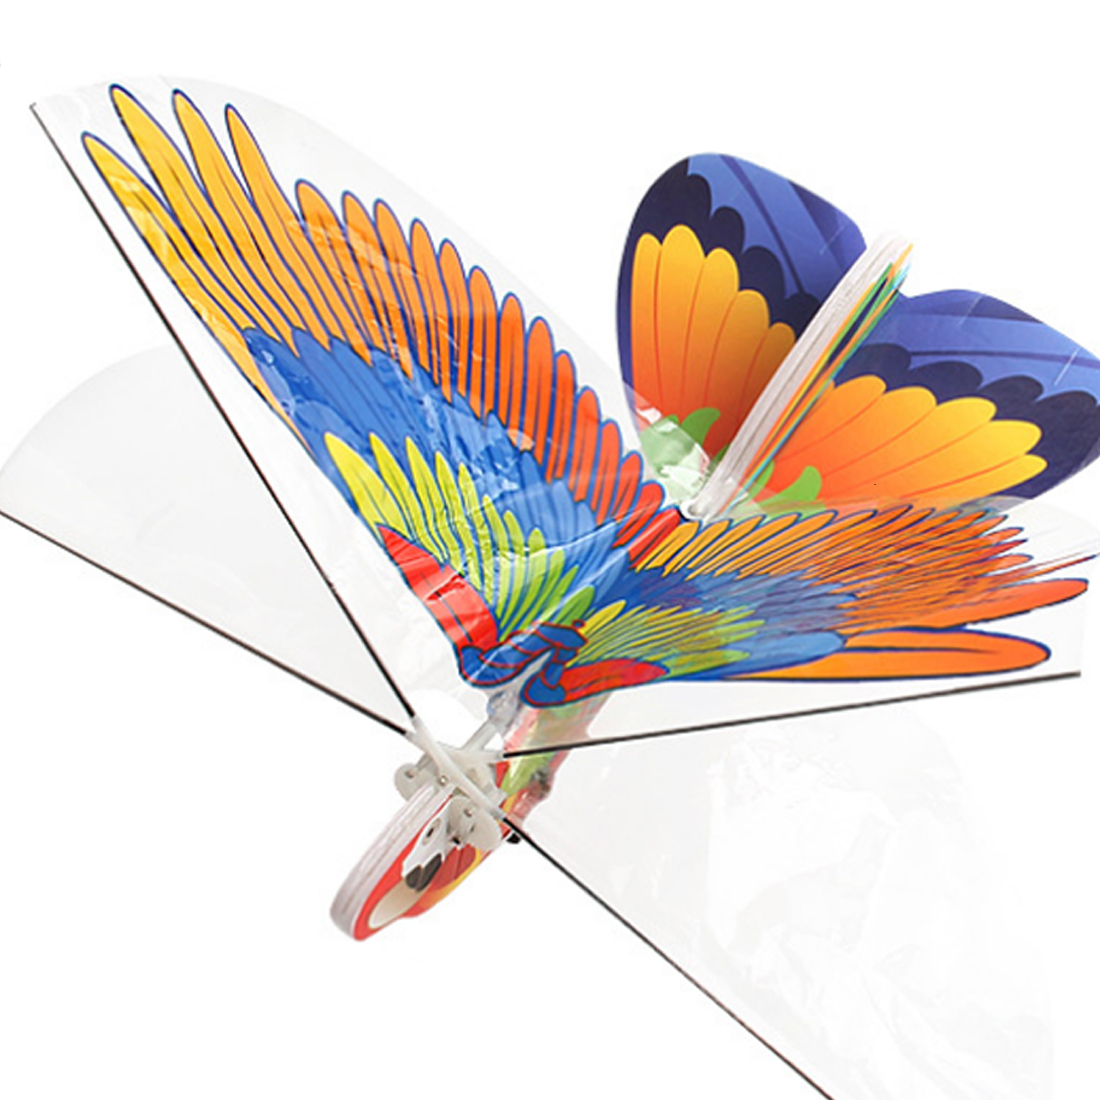 DIY Electric Infra-Red RC Kite Flying Bird Toys Outdoor Sports Toys For Children Running- 340B Parrot Type/Eagle Type